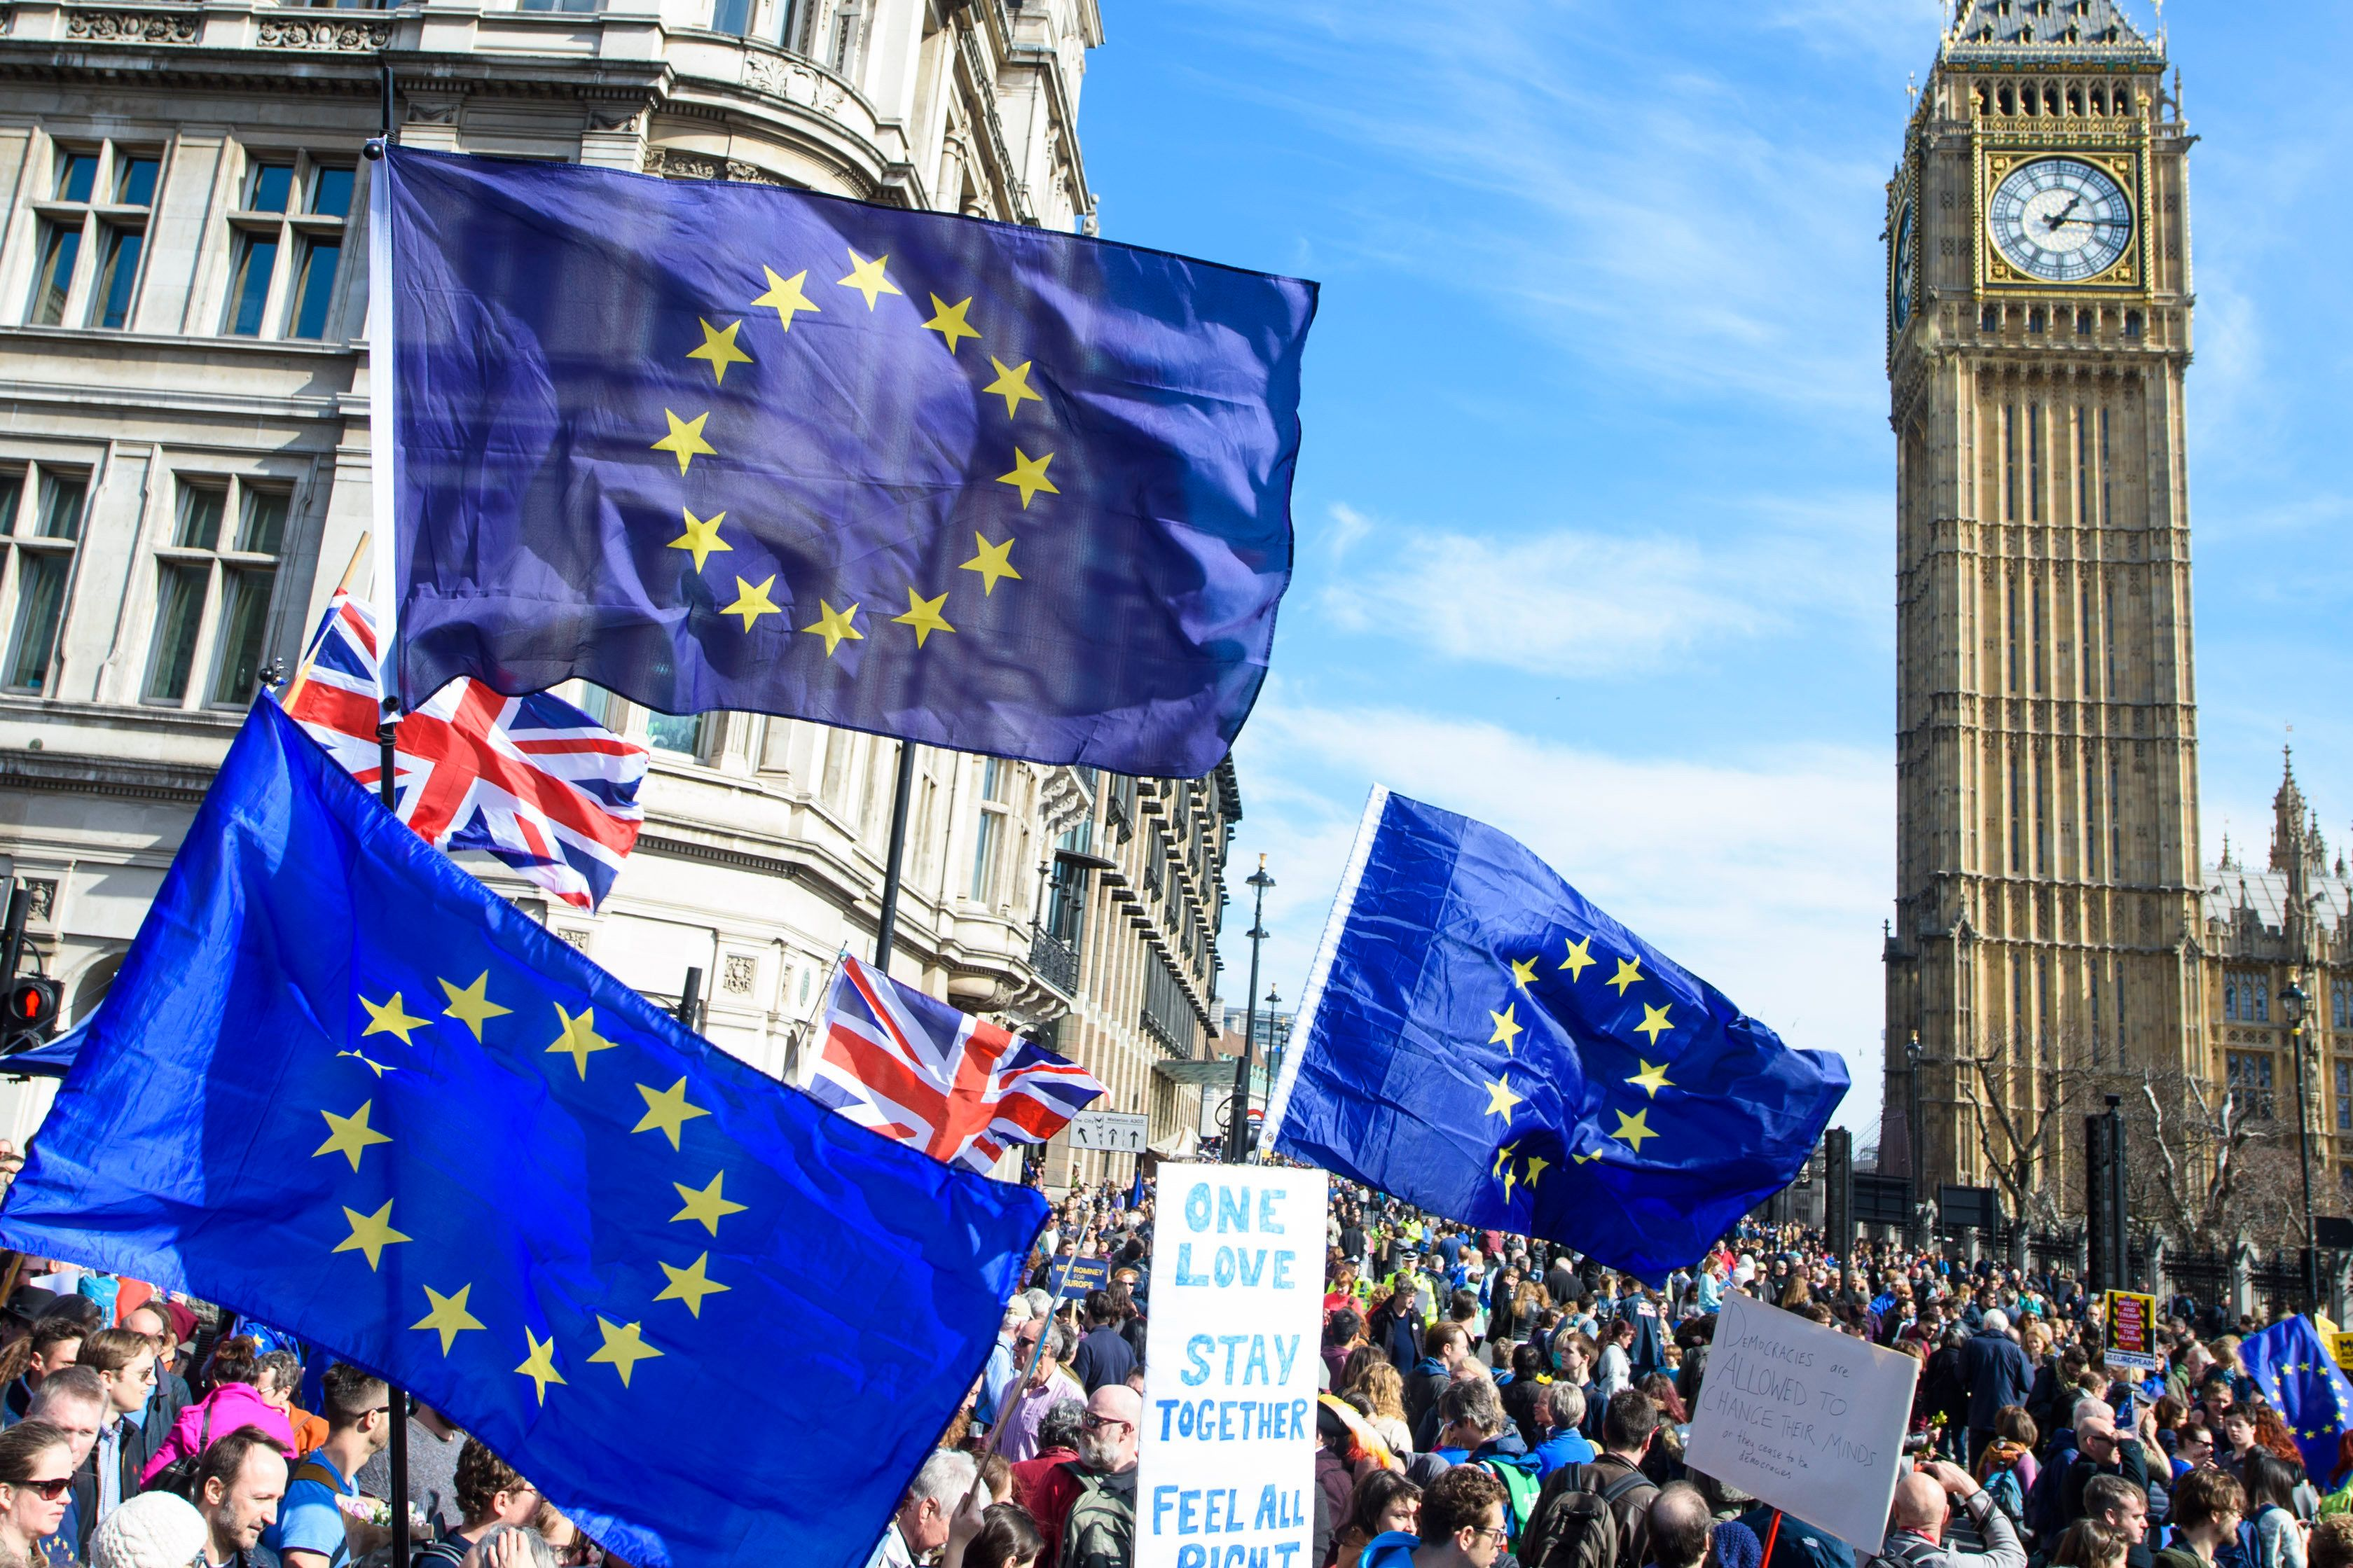 EU Referendum Site Crash 'May Have Been Result Of Foreign